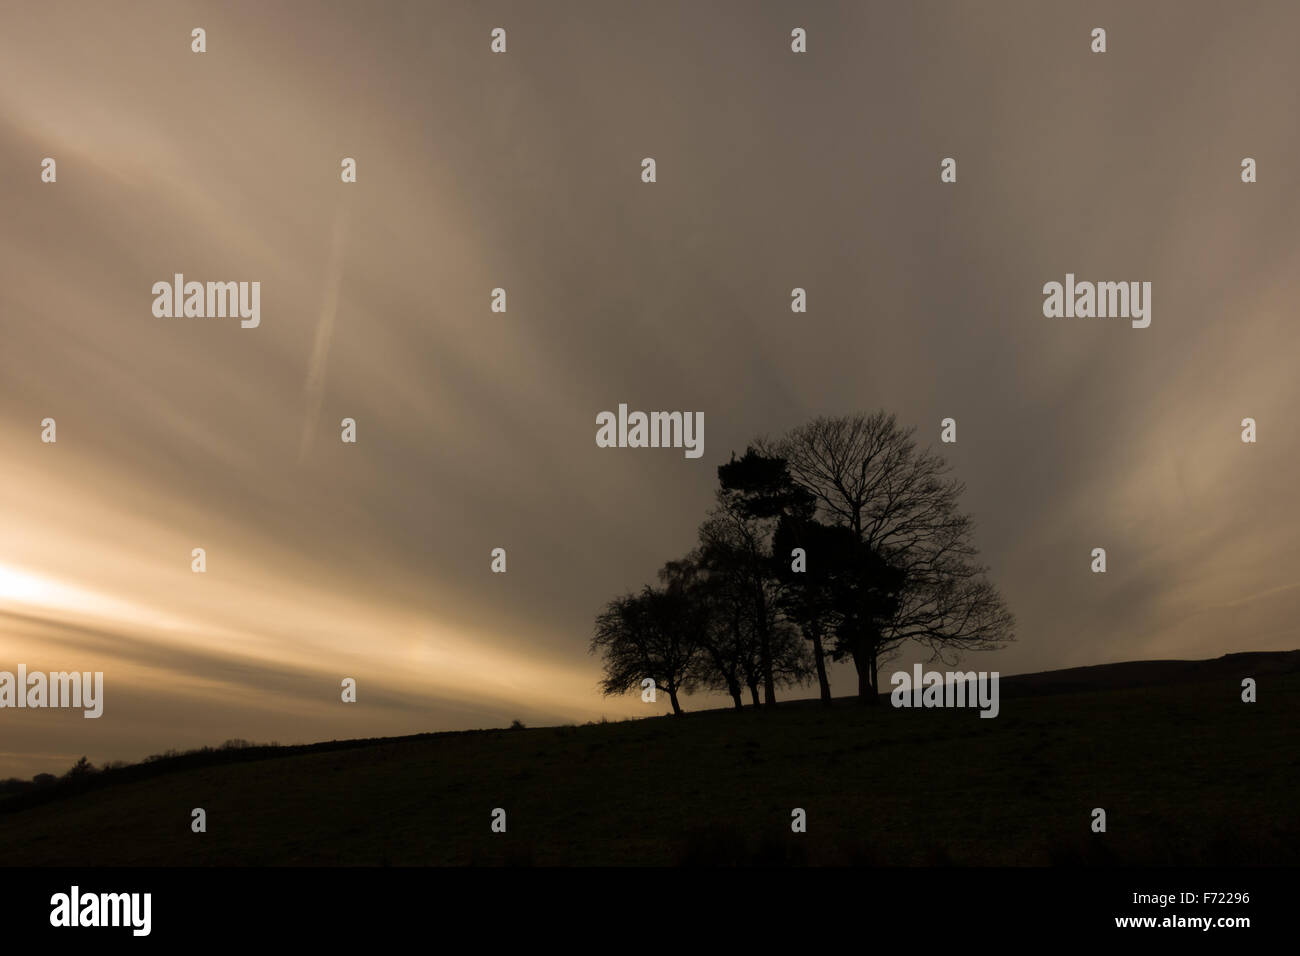 A small copse of trees with a remarkable cloud formation behind - Stock Image